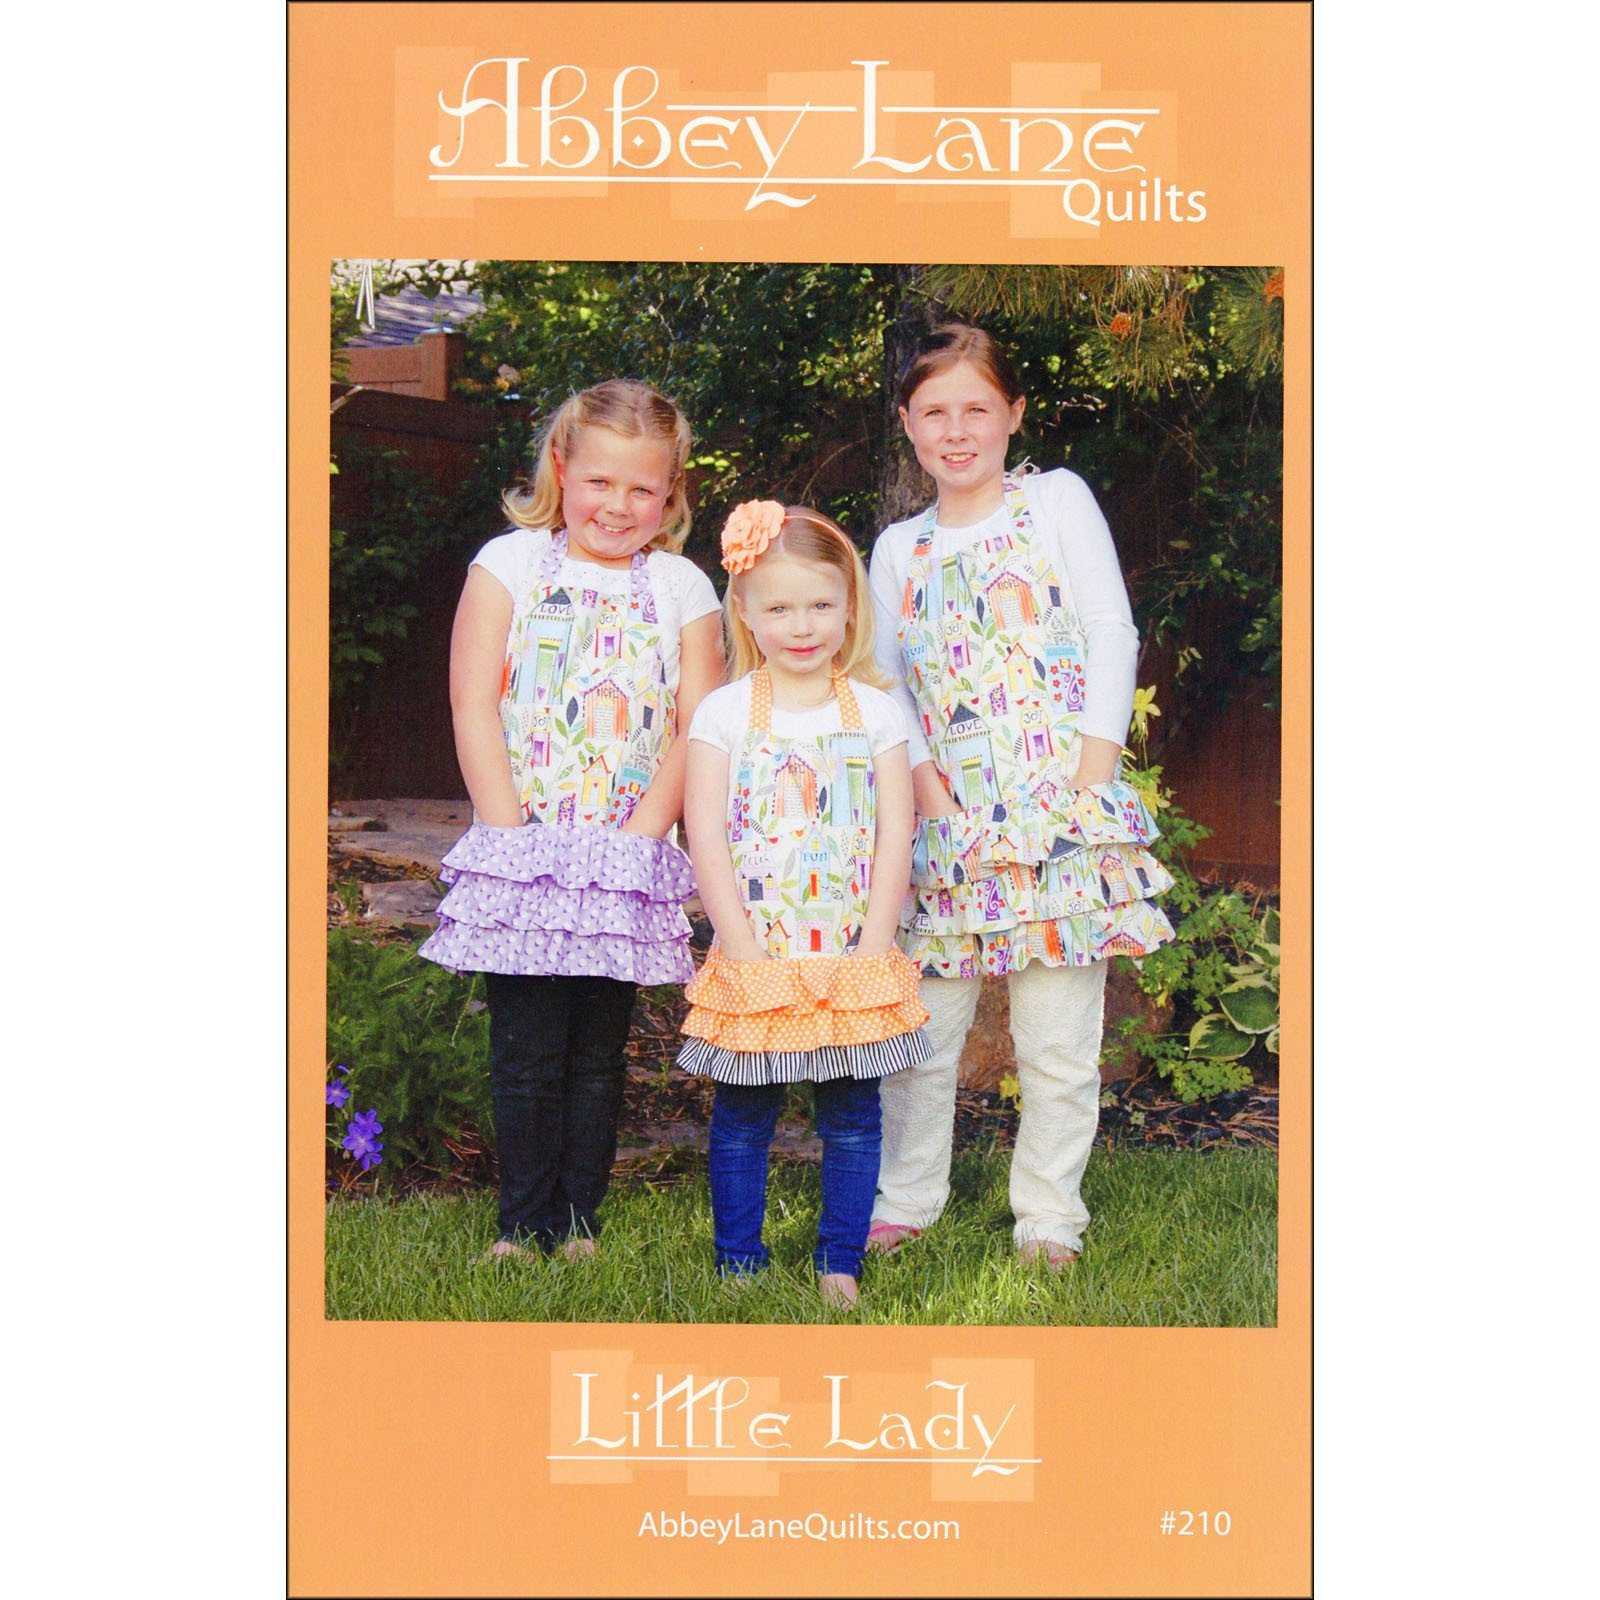 Little Lady<br/>Abbey Lane Quilts ALQ210